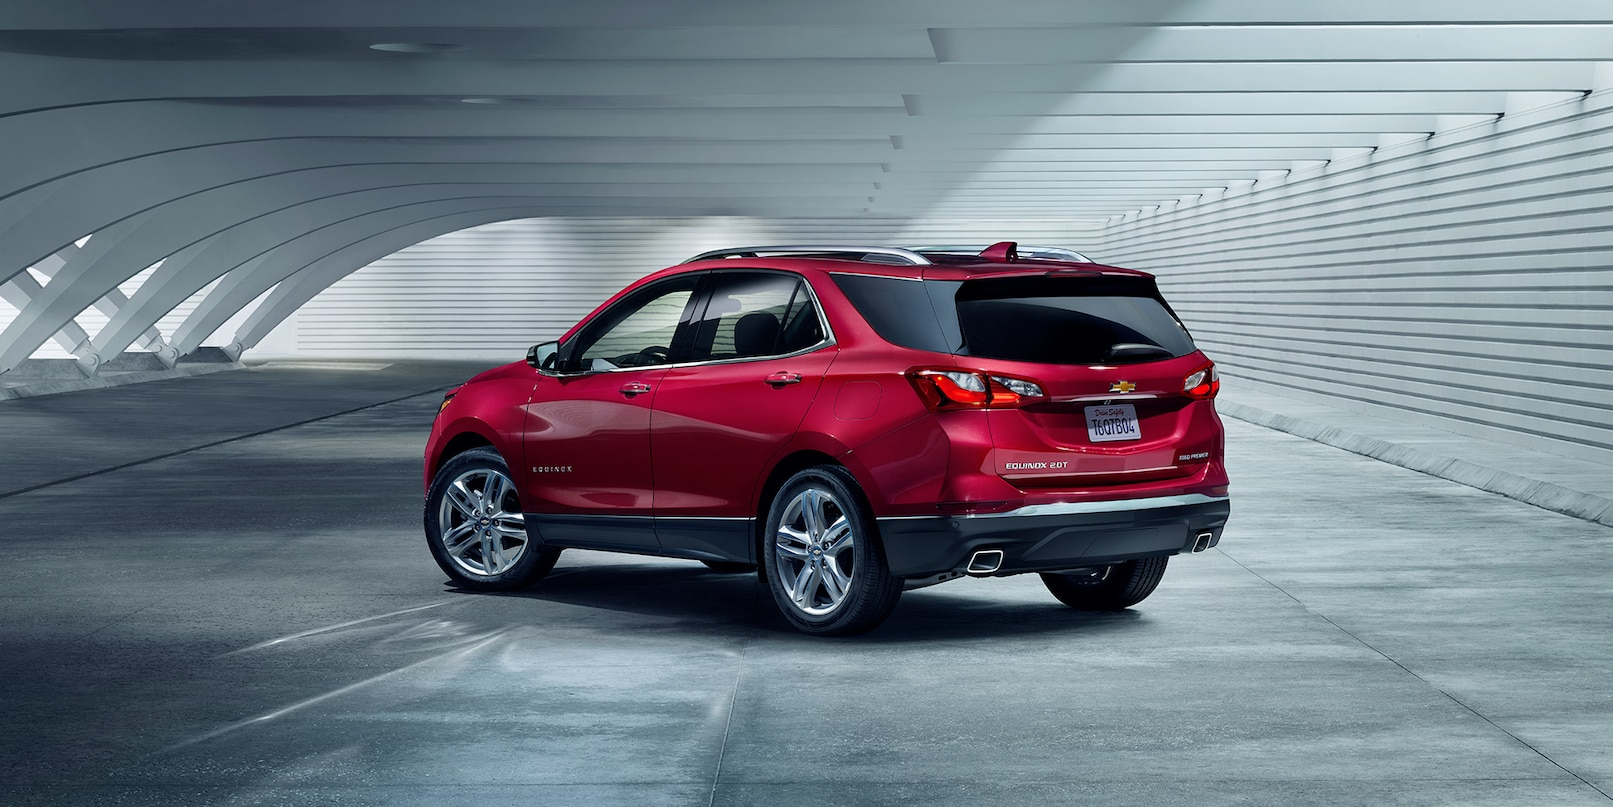 2019 Chevrolet Equinox Features and Benefits near North County, CA